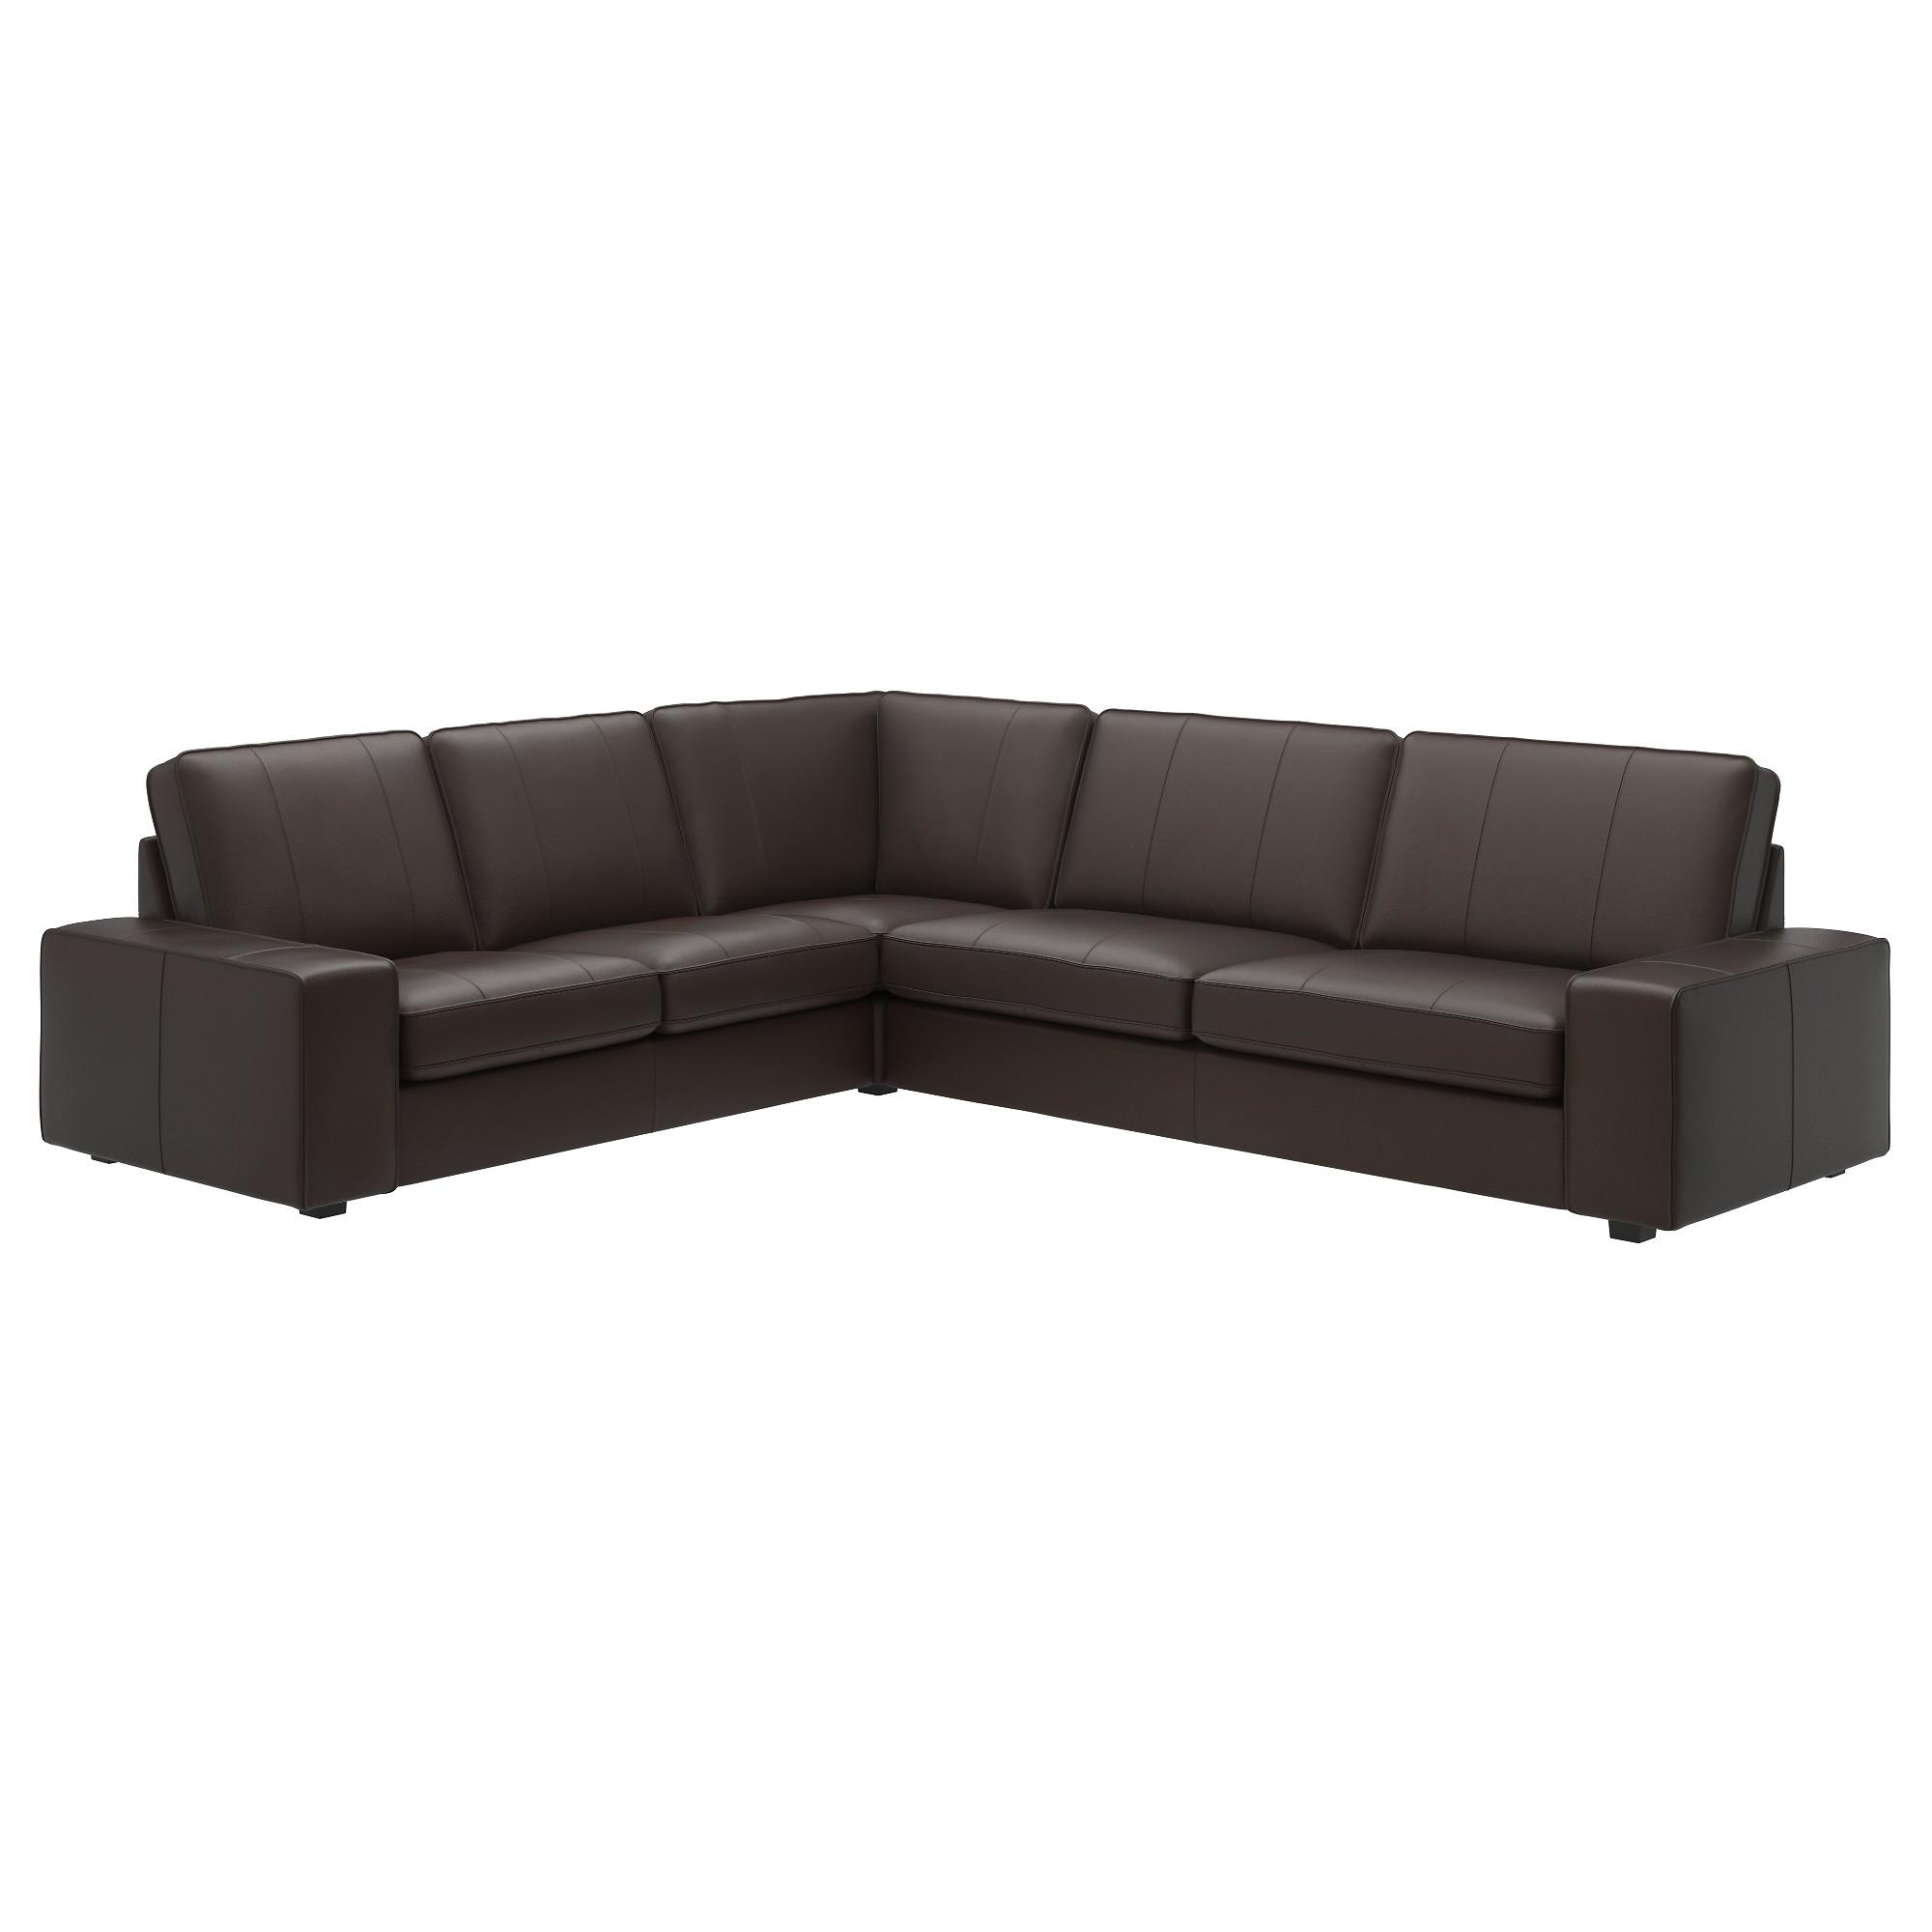 leather sofas ikea crate and barrel camden 69 sofa 15 best ideas furniture sectionals